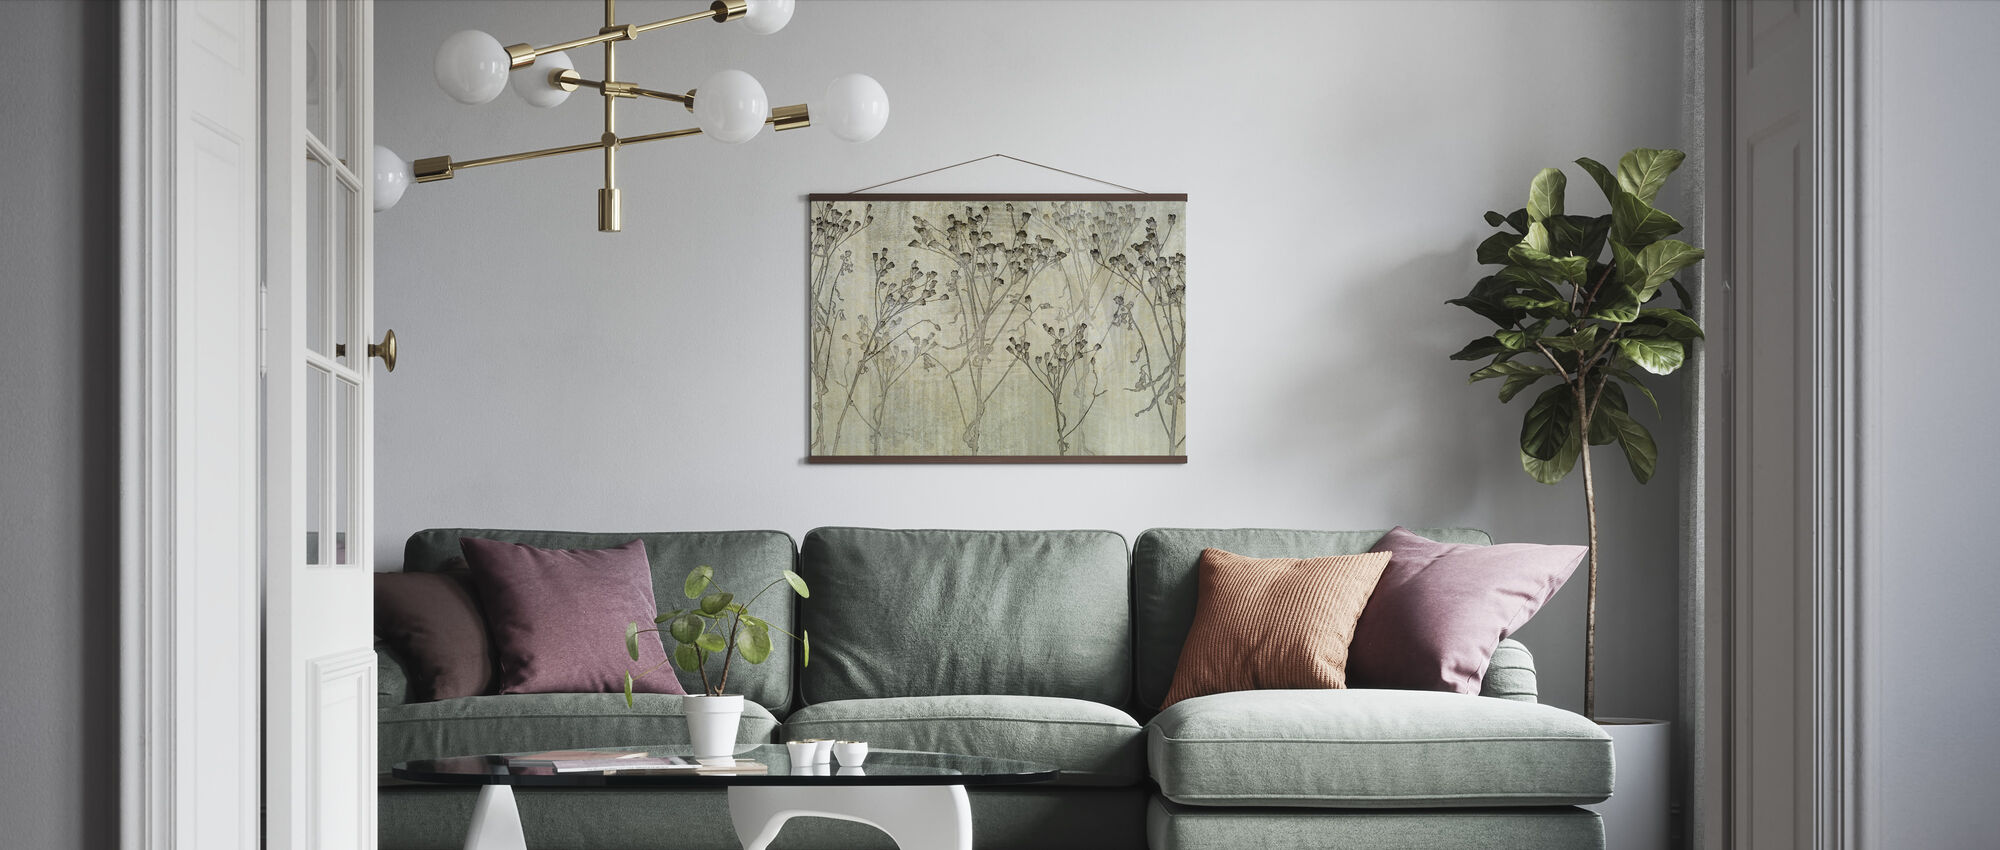 Concrete Weed - Poster - Living Room